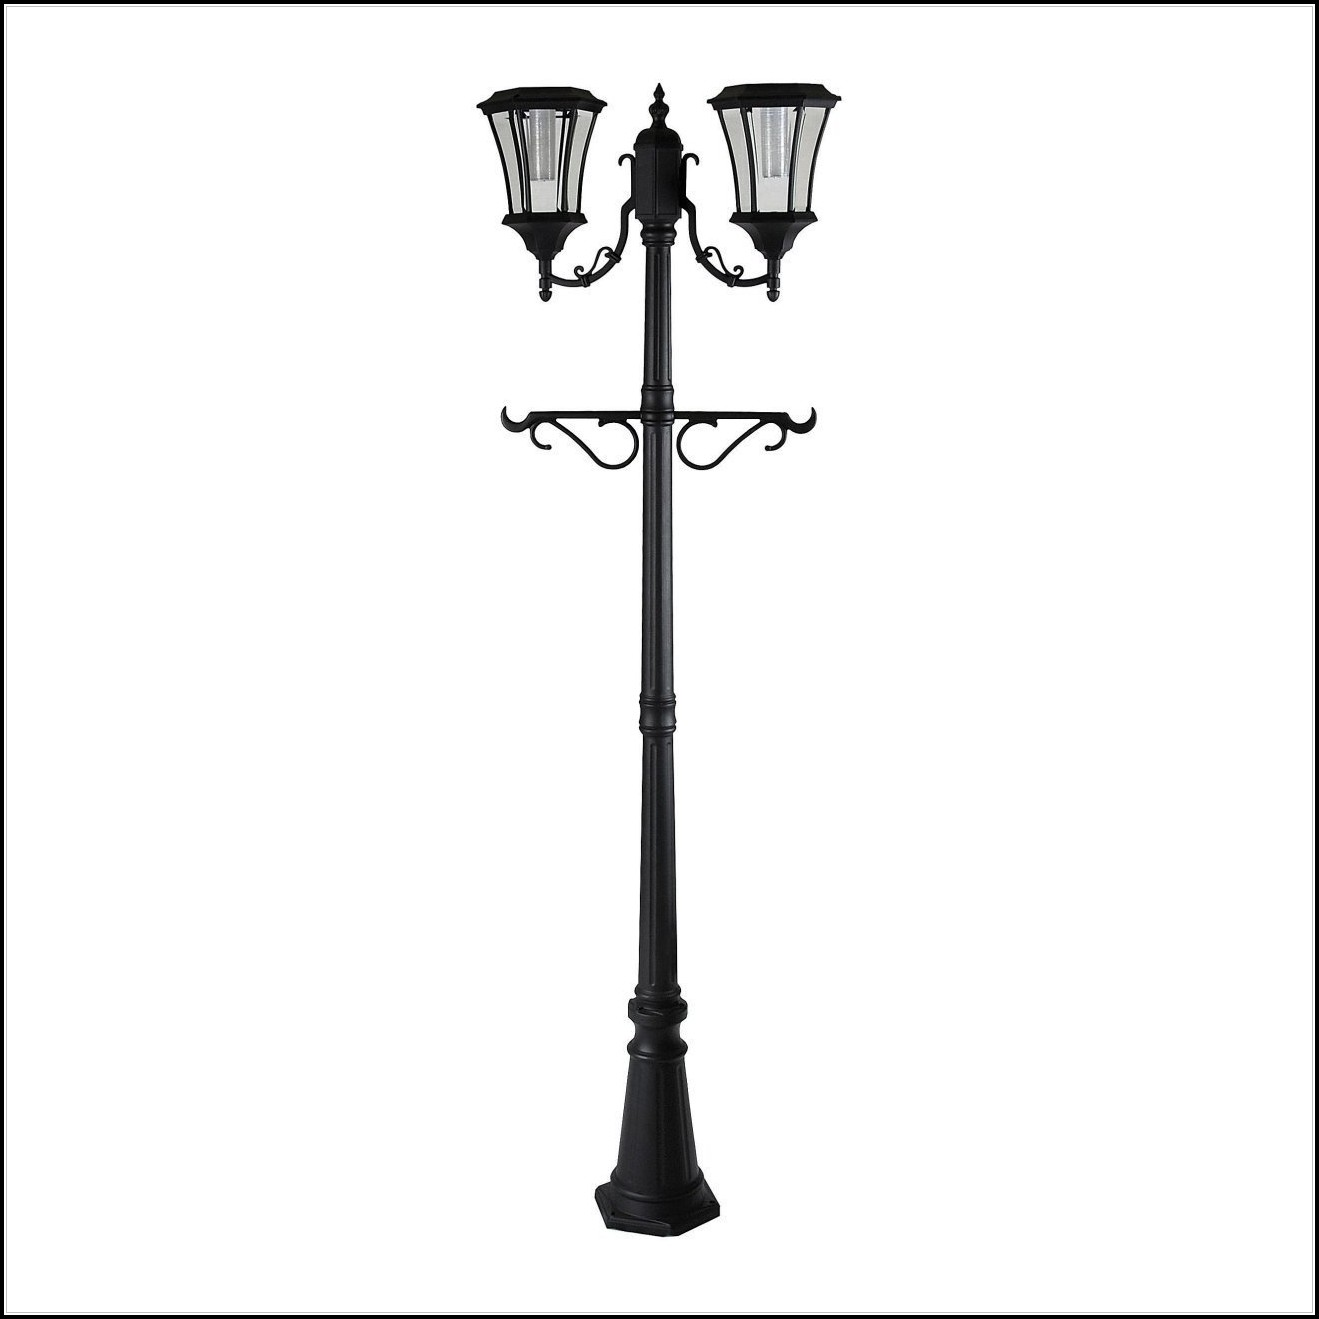 Sunergy Solar Lamp Post With Planter Base